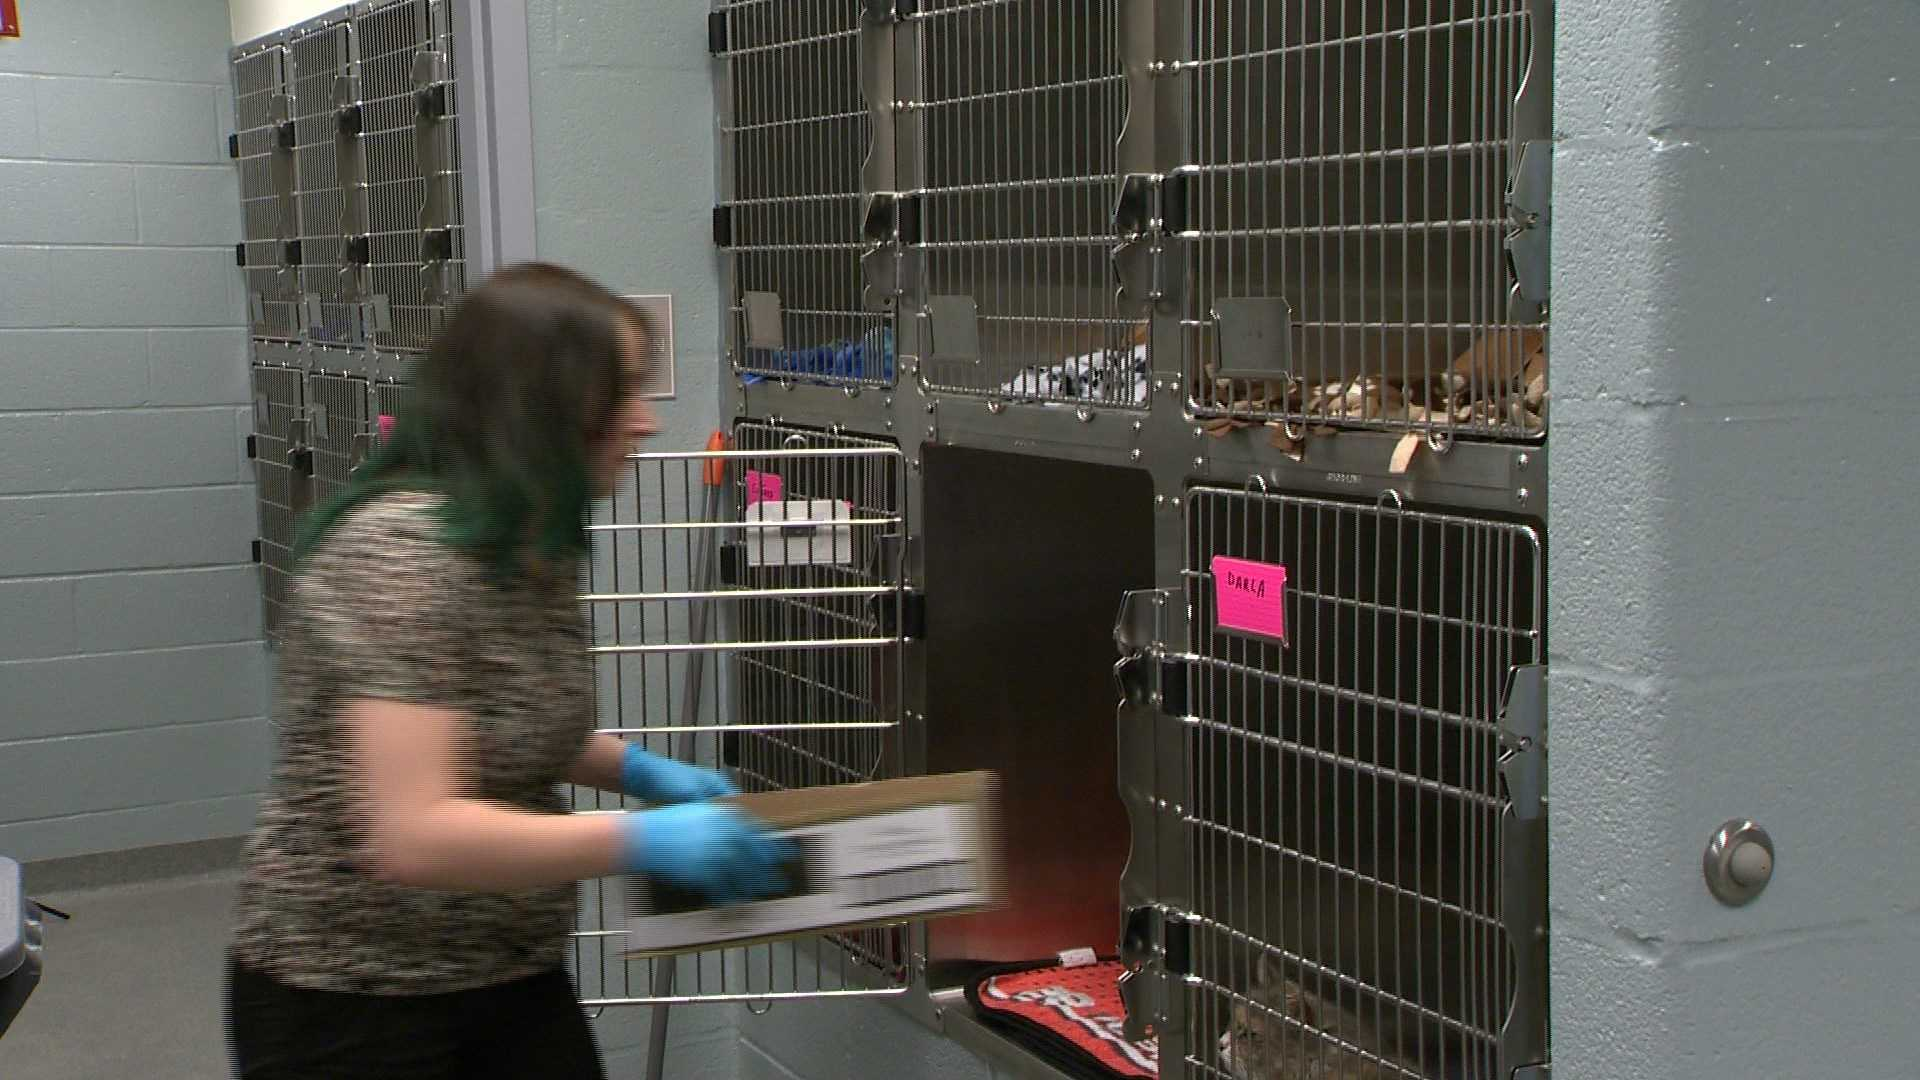 Workers prepare to move animals into a new 19,000-square-foot Humane Society of Harford County Shelter in Fallson.